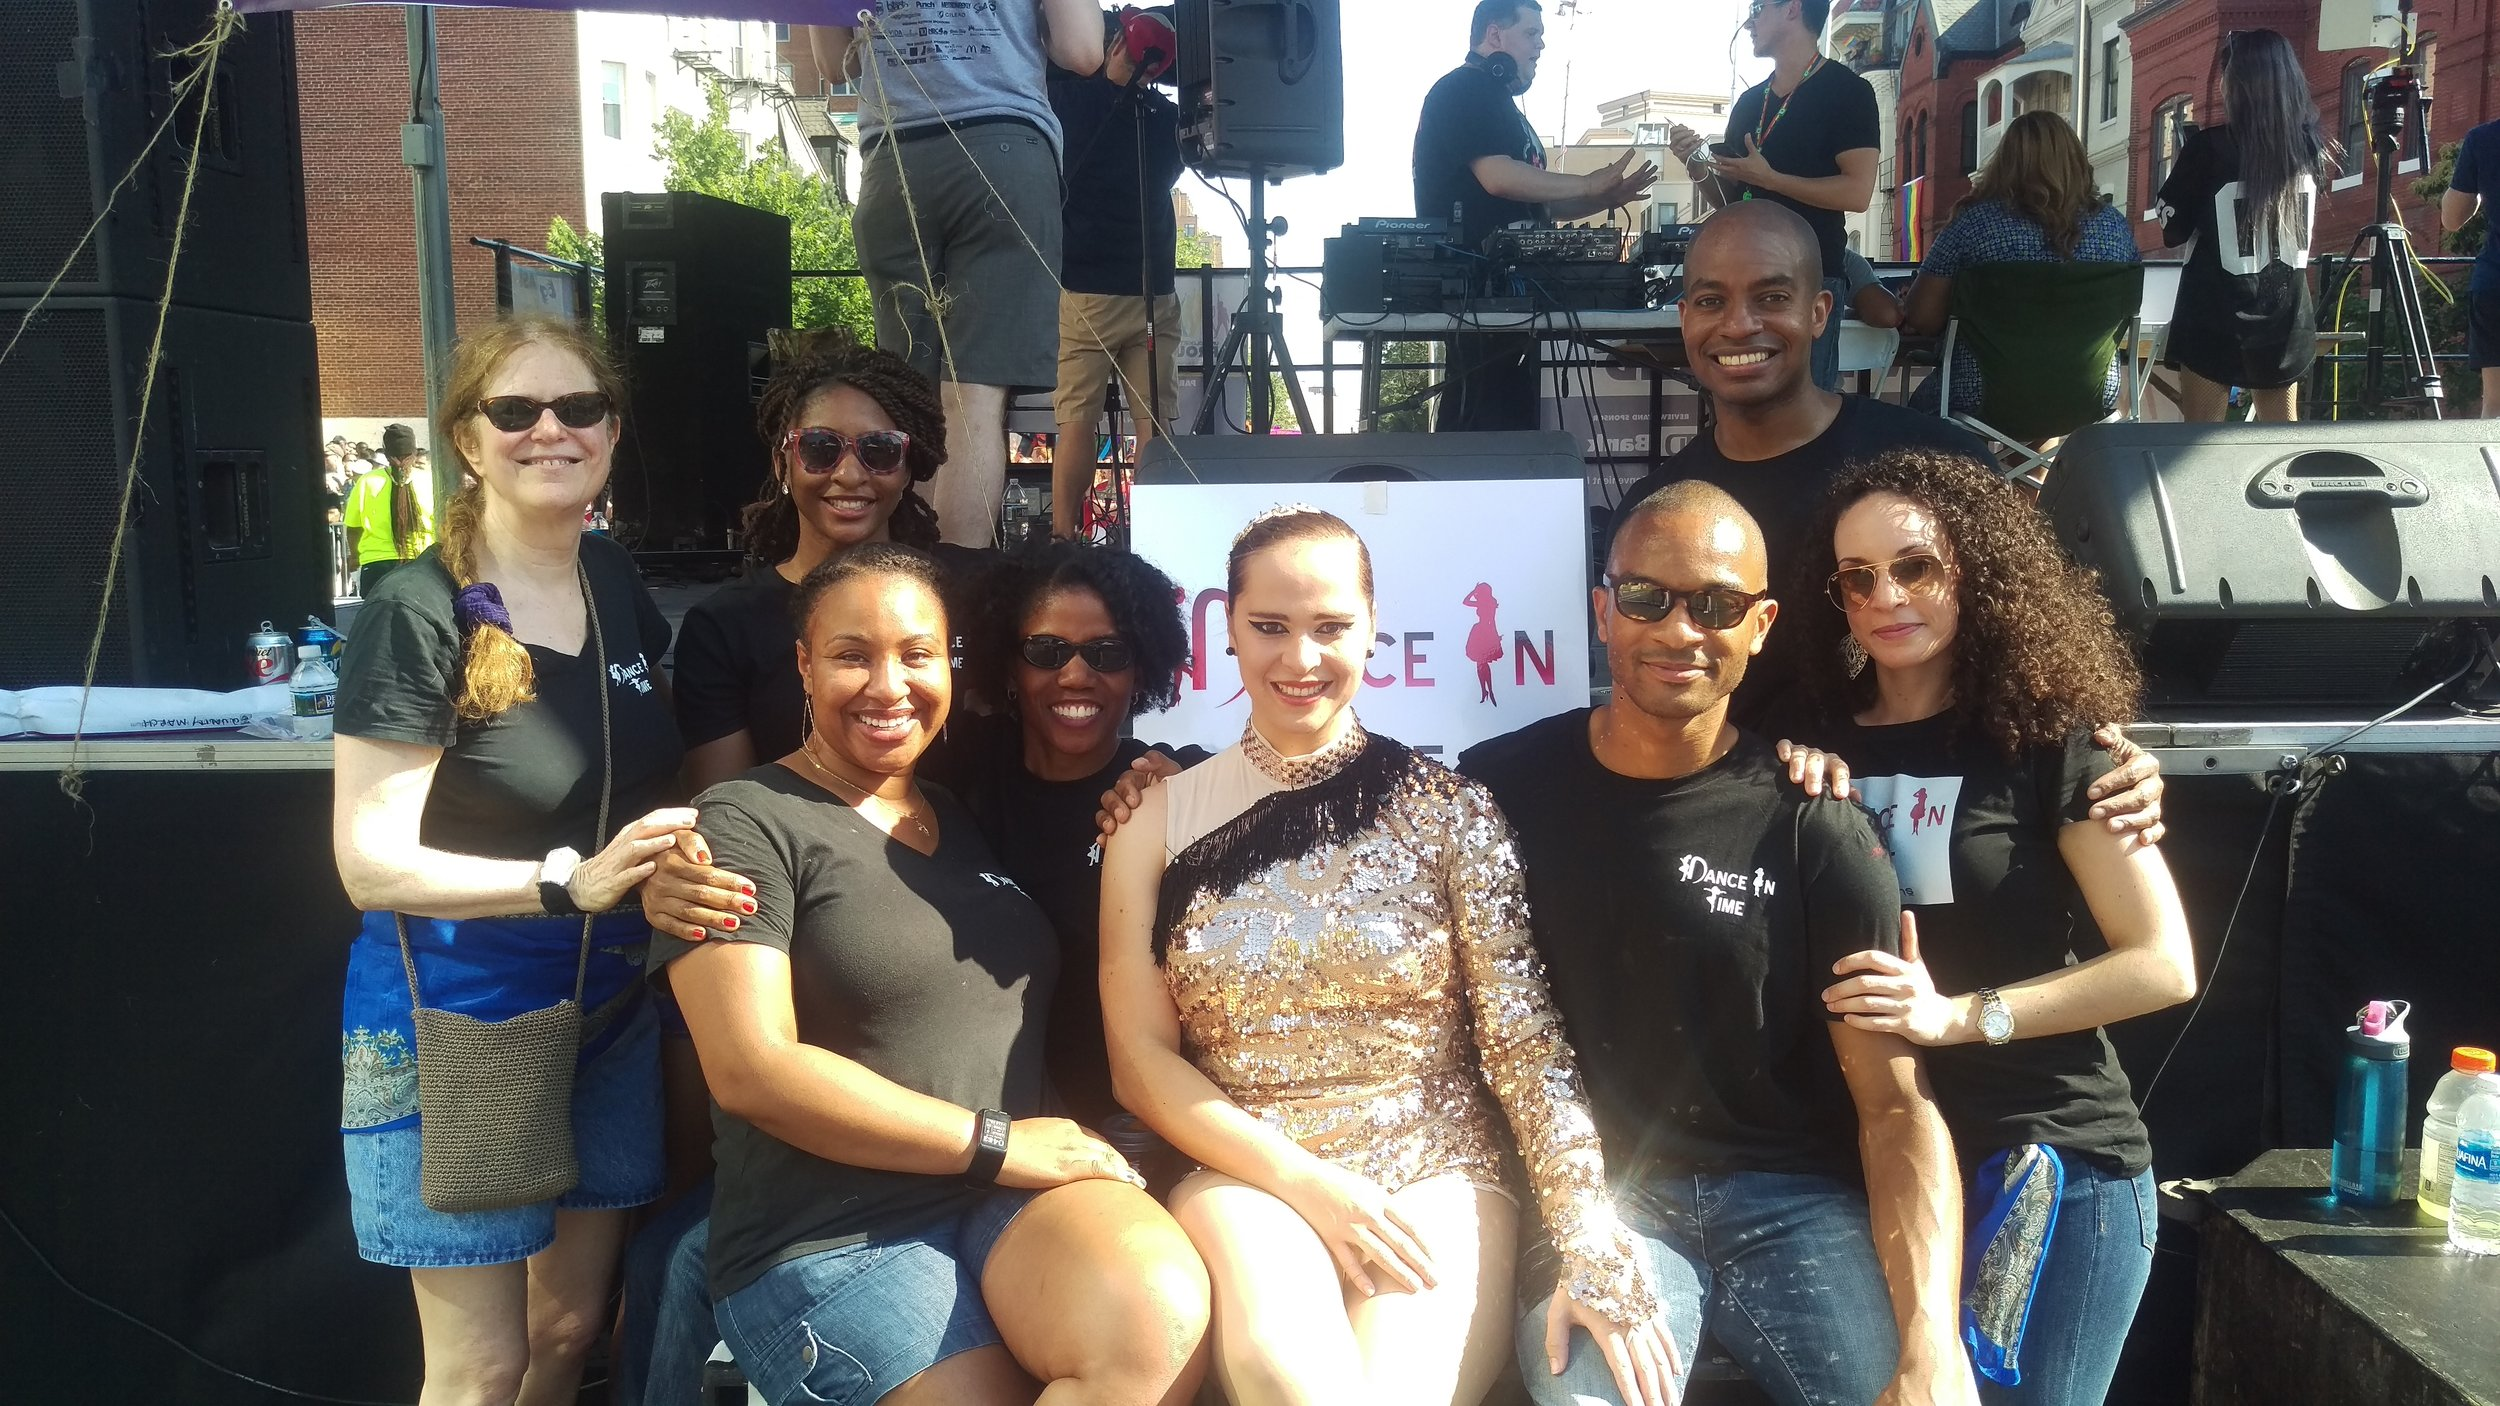 DIT Performed Colombian Salsa, Cuban Salsa, and Cha Cha for Pride Fest in DC